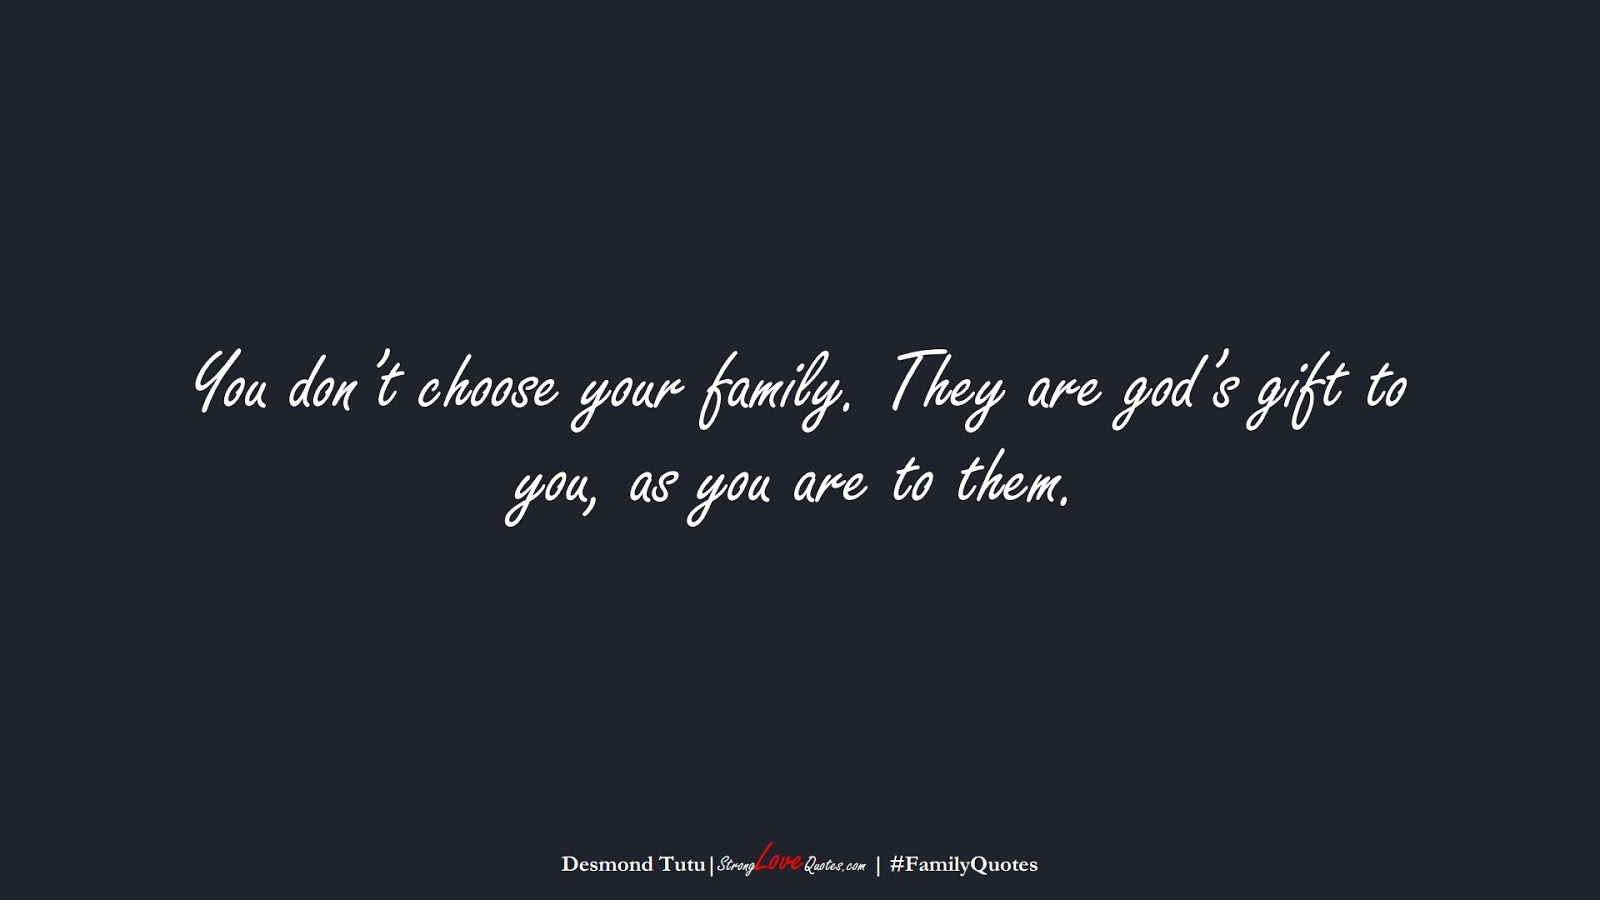 You don't choose your family. They are god's gift to you, as you are to them. (Desmond Tutu);  #FamilyQuotes